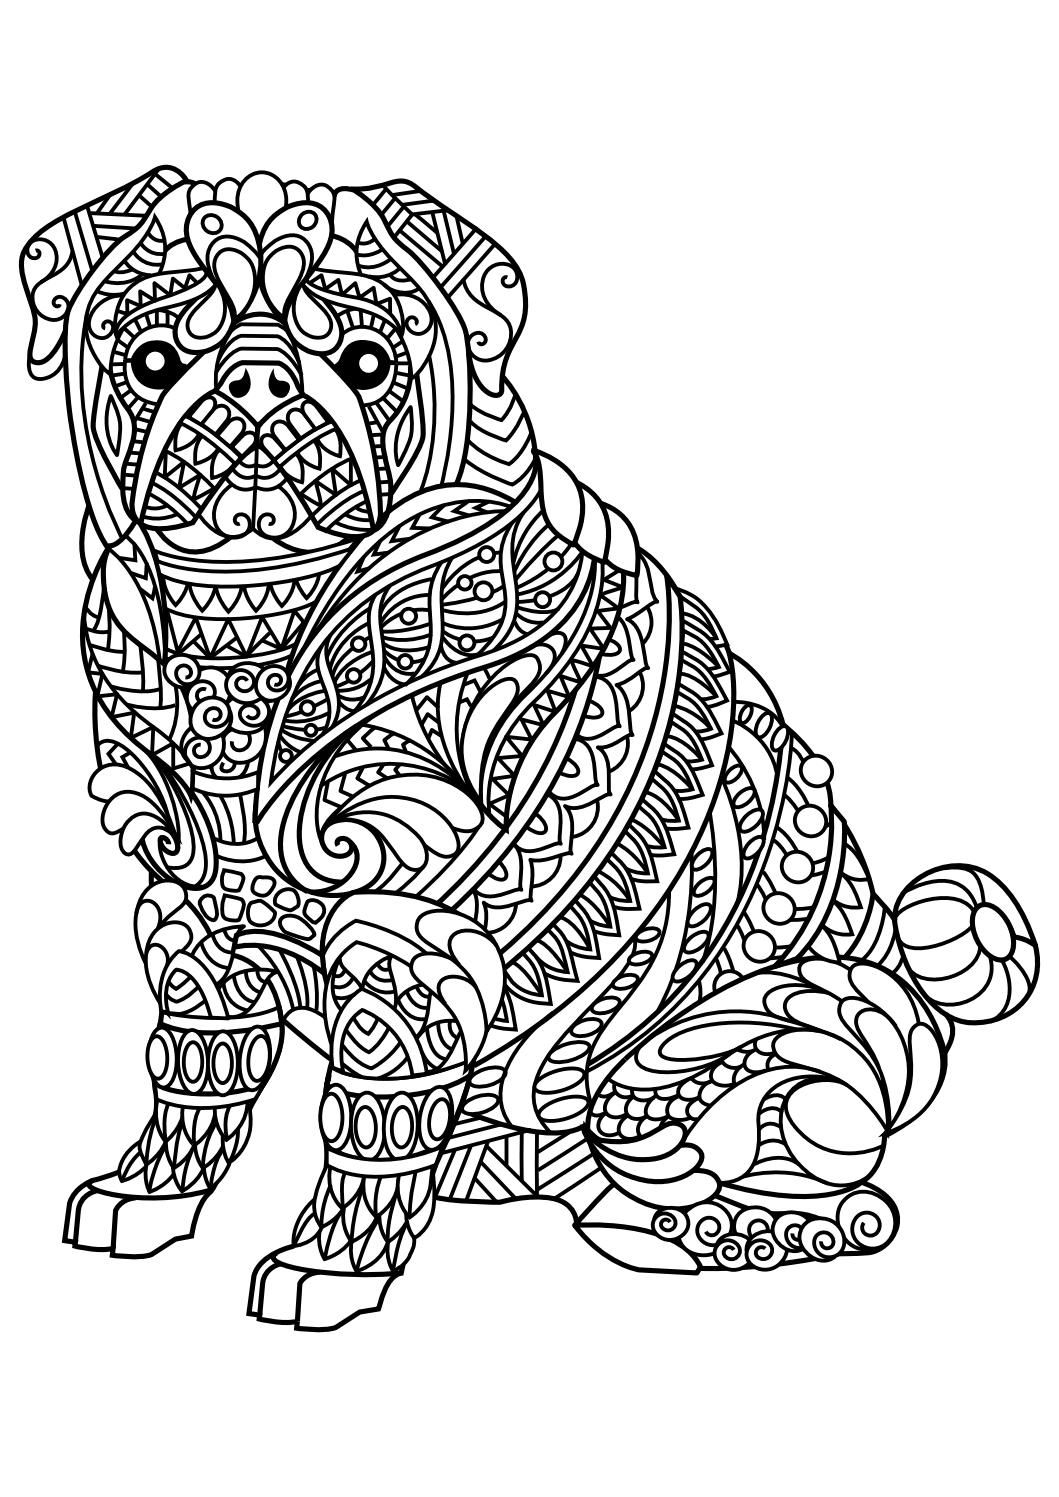 Chiwawa Coloring Pages - Animal Coloring Pages Pdf Coloring Animals